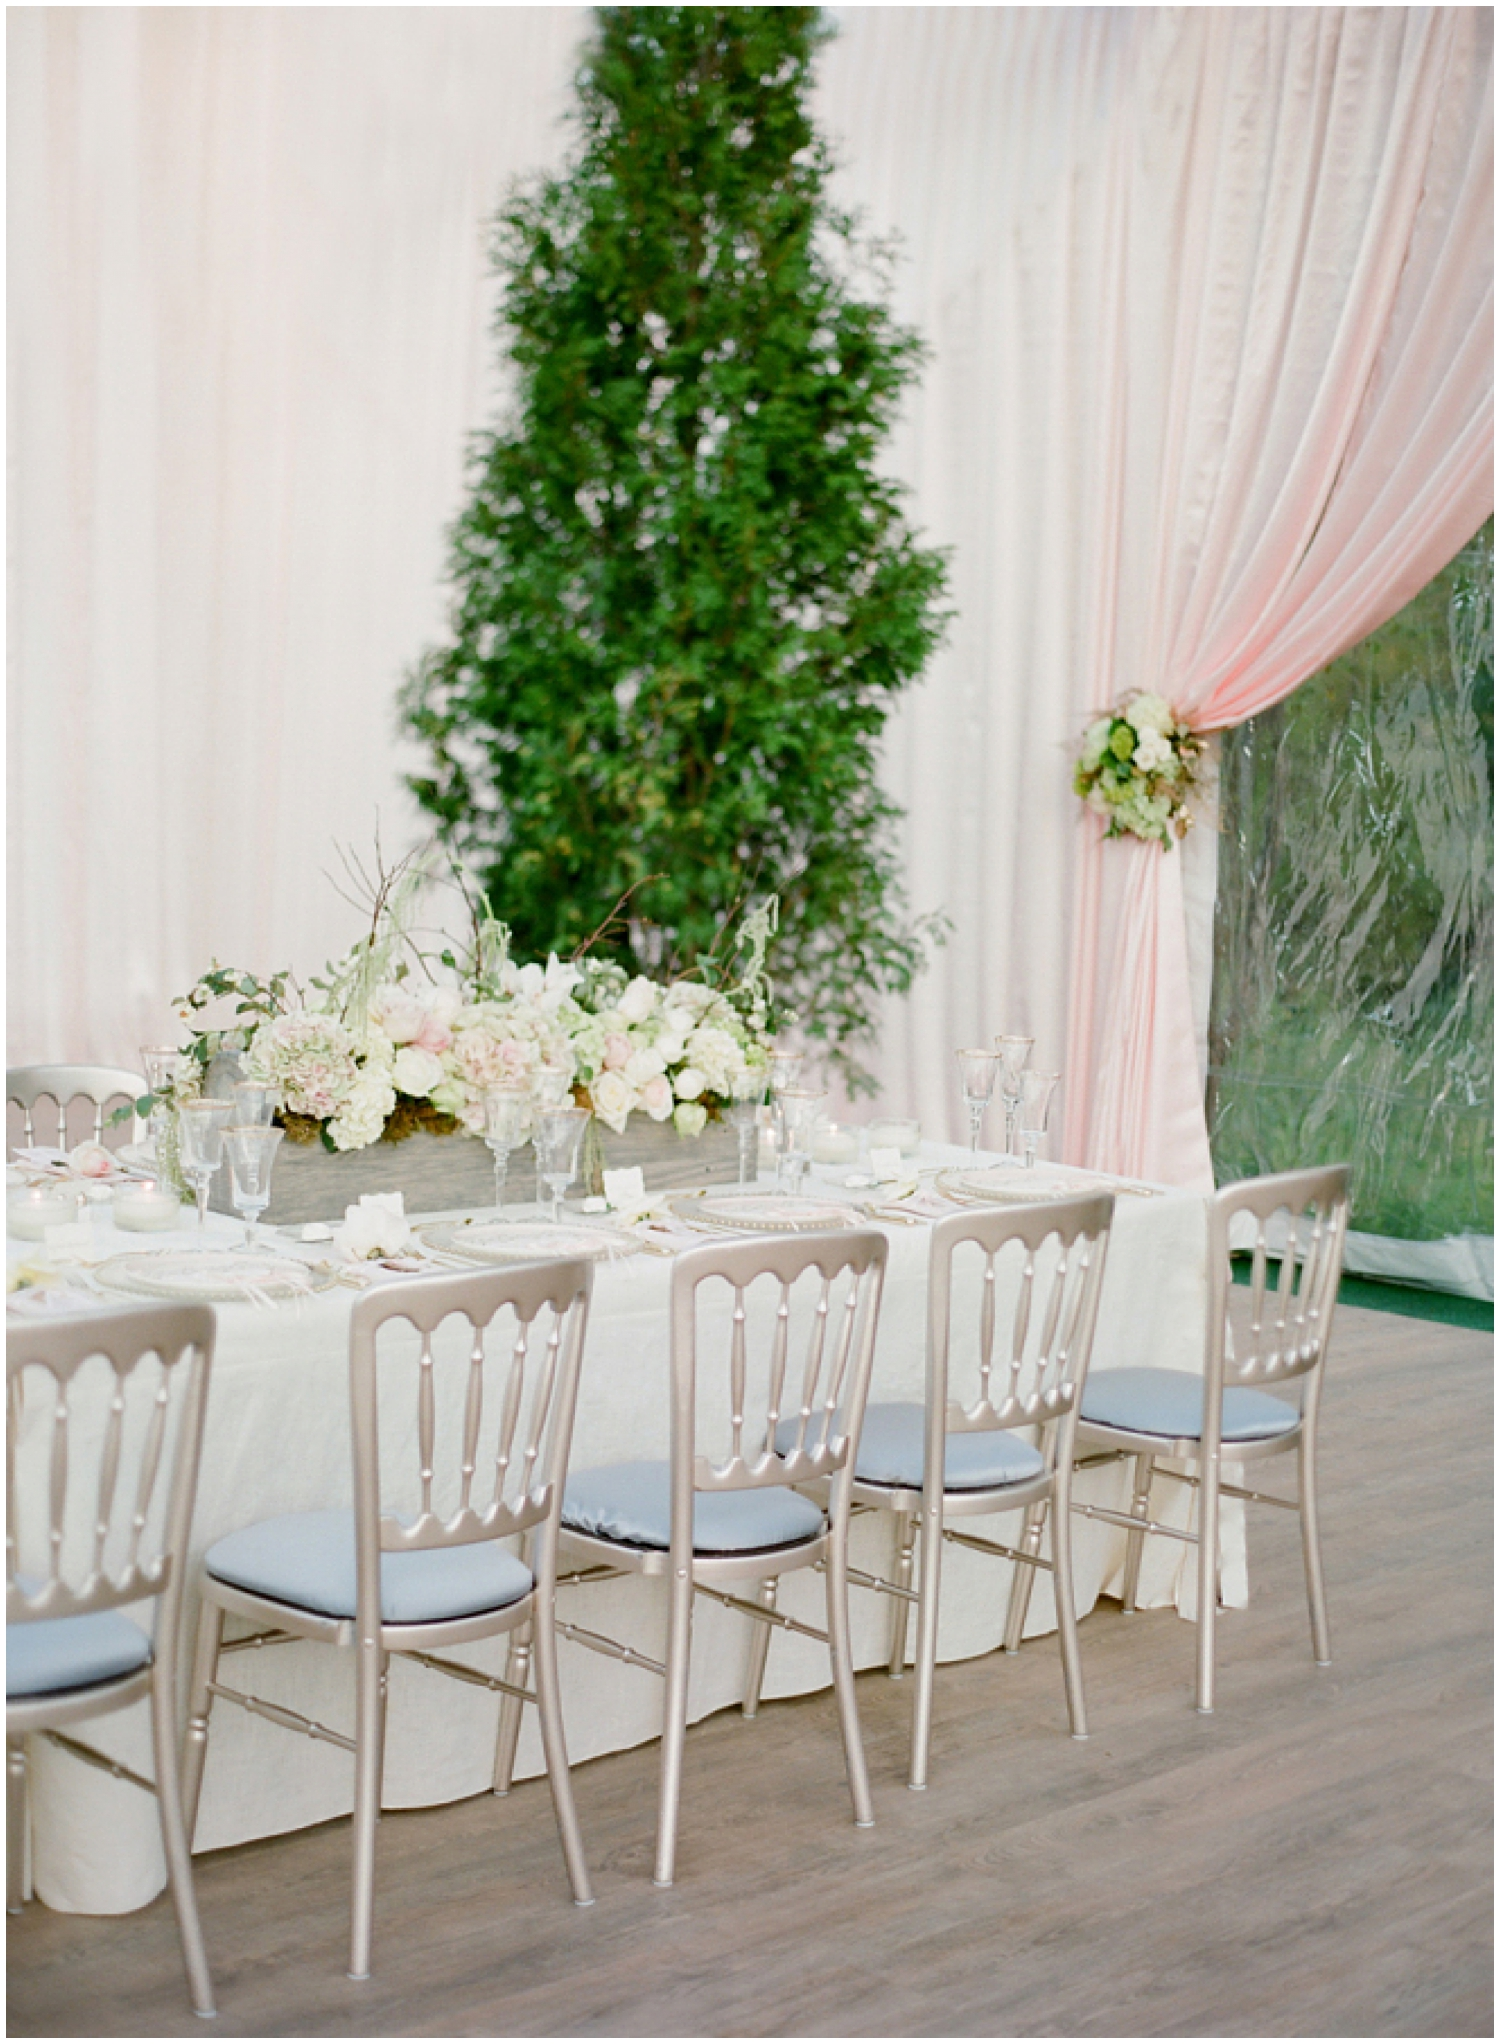 Gorgeous Neutrals + Blush Tented Wedding | Designed by  Kehoe Designs  | Photographed by  Jose Villa  | As seen on  Style Me Pretty